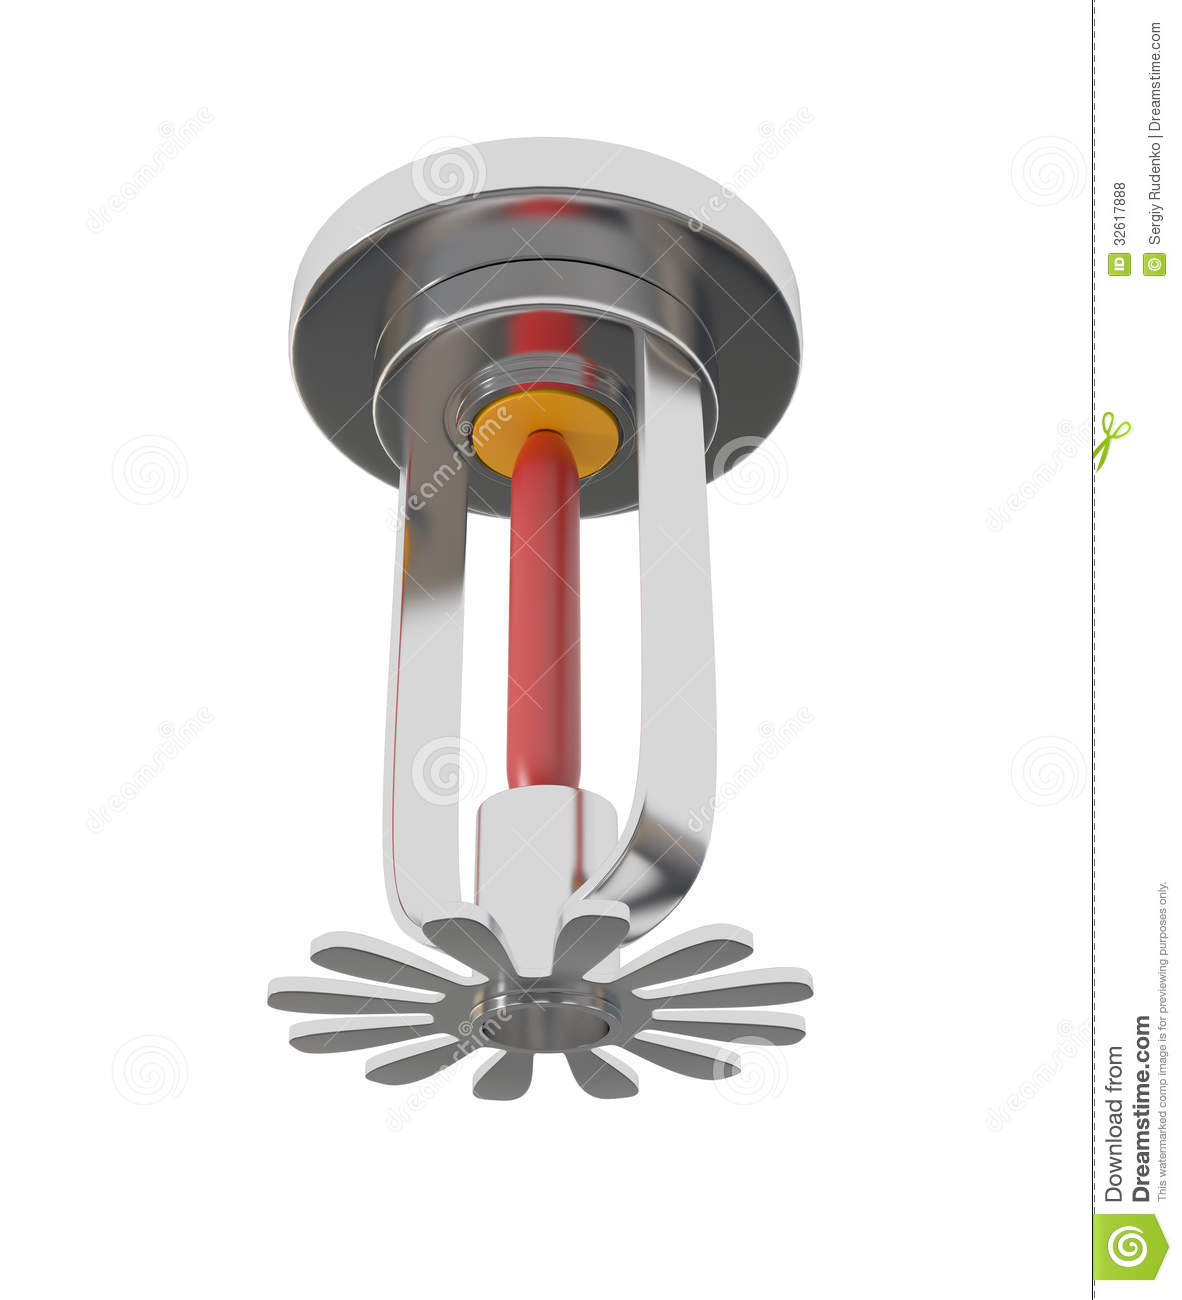 Fire alarm bell clip art moreover Royalty Free Stock Photo Fire Safety Sign Image15578775 as well Royalty Free Stock Photo Access Fire Alarm Security System Zones Security Image36255015 likewise Clipart 66232 furthermore Fire Survivors Asking What Do I Do Now. on smoke alarm clip art